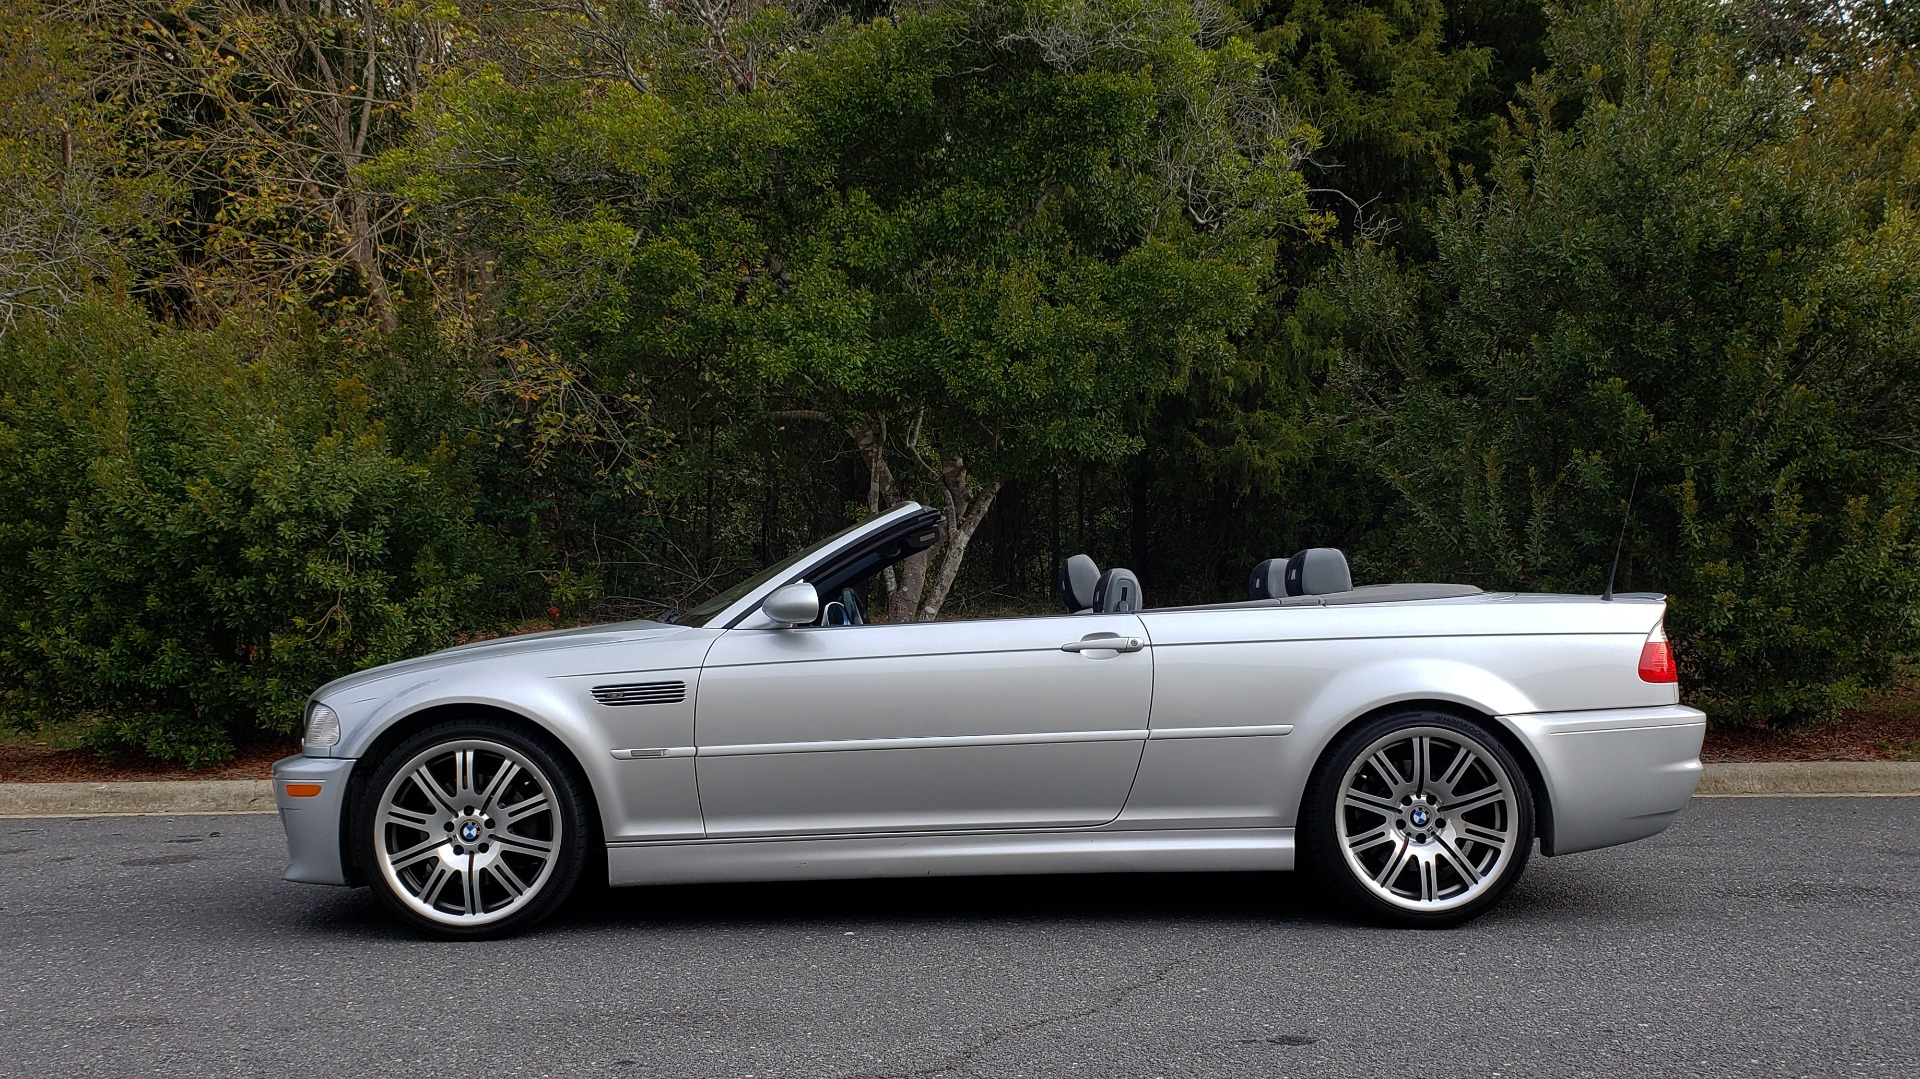 Used 2002 BMW M3 CONVERTIBLE / 6-SPD MAN / XENON / 19IN WHEELS for sale Sold at Formula Imports in Charlotte NC 28227 3